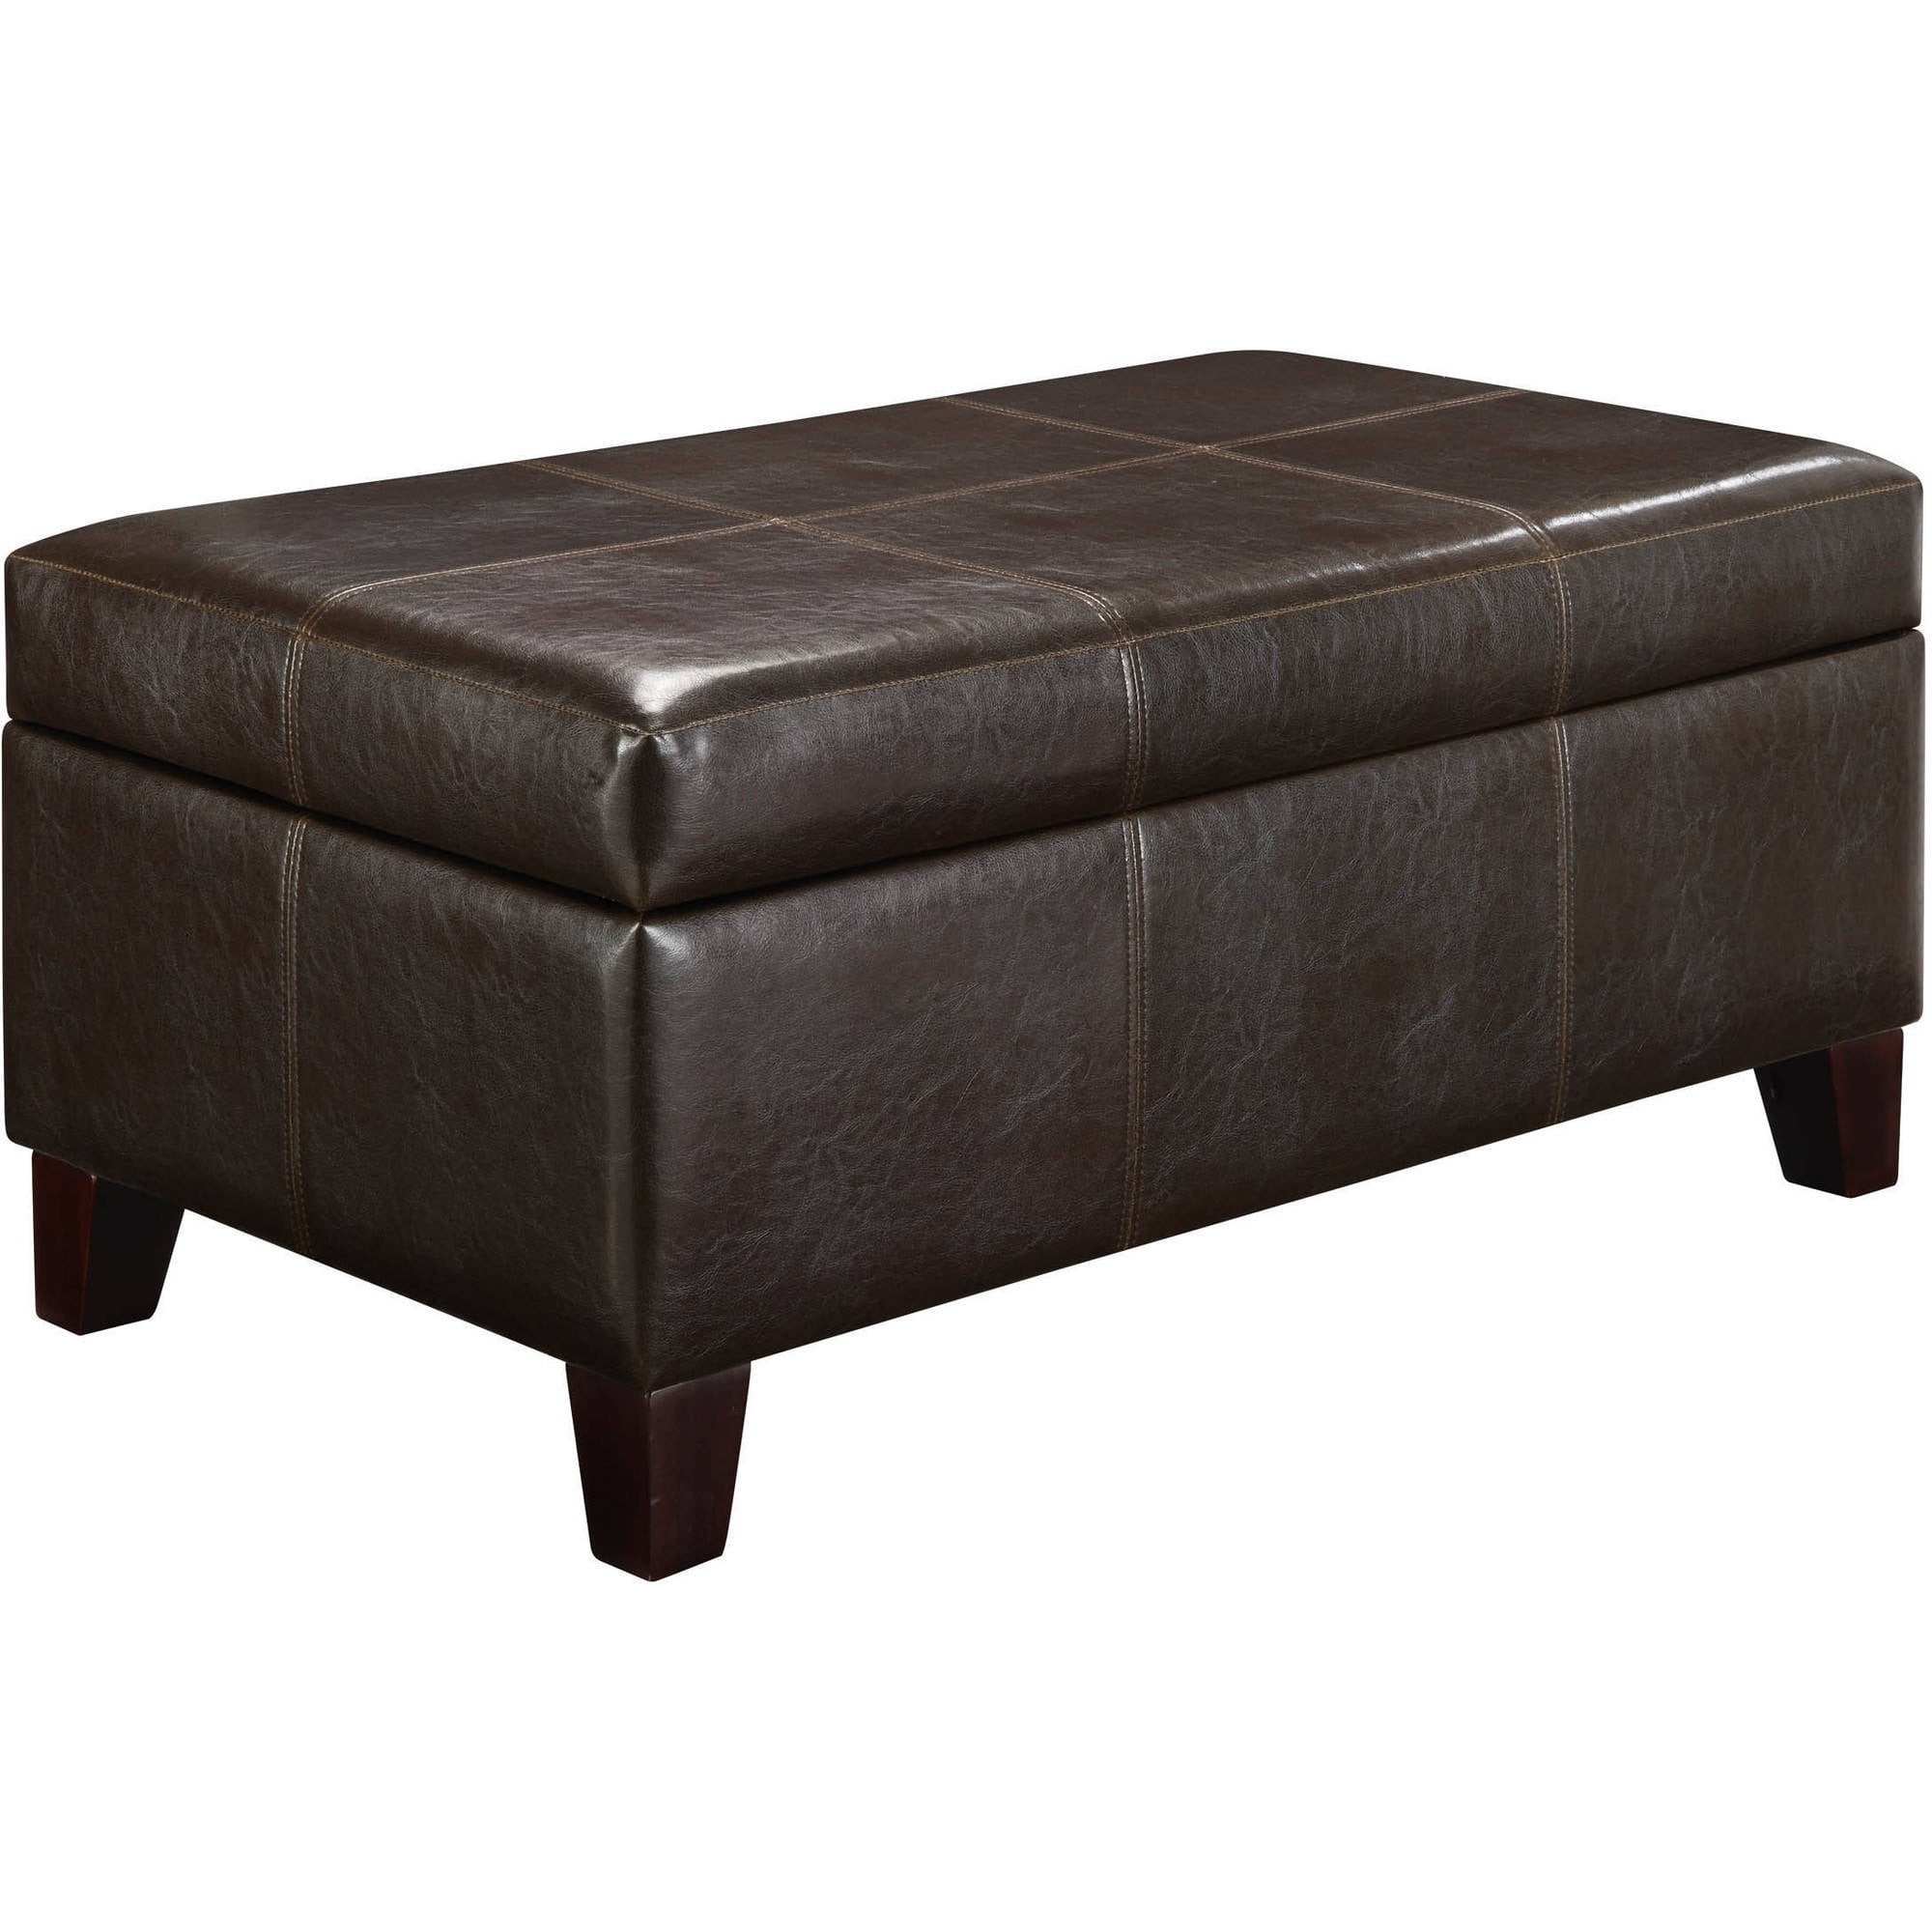 Dorel Living Rectangular Storage Ottoman Multiple Colors